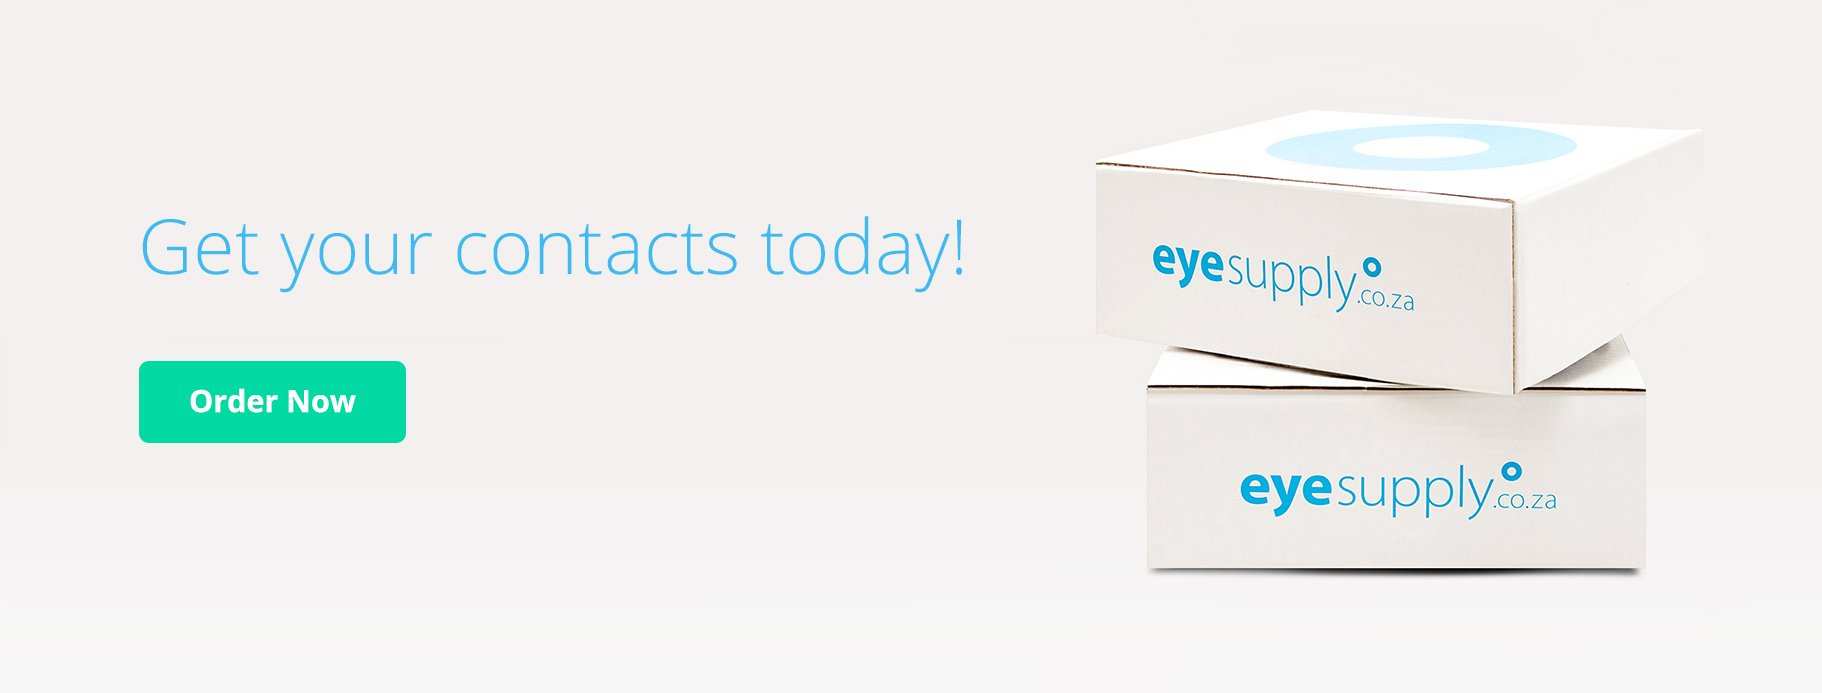 Buy Contact Lenses